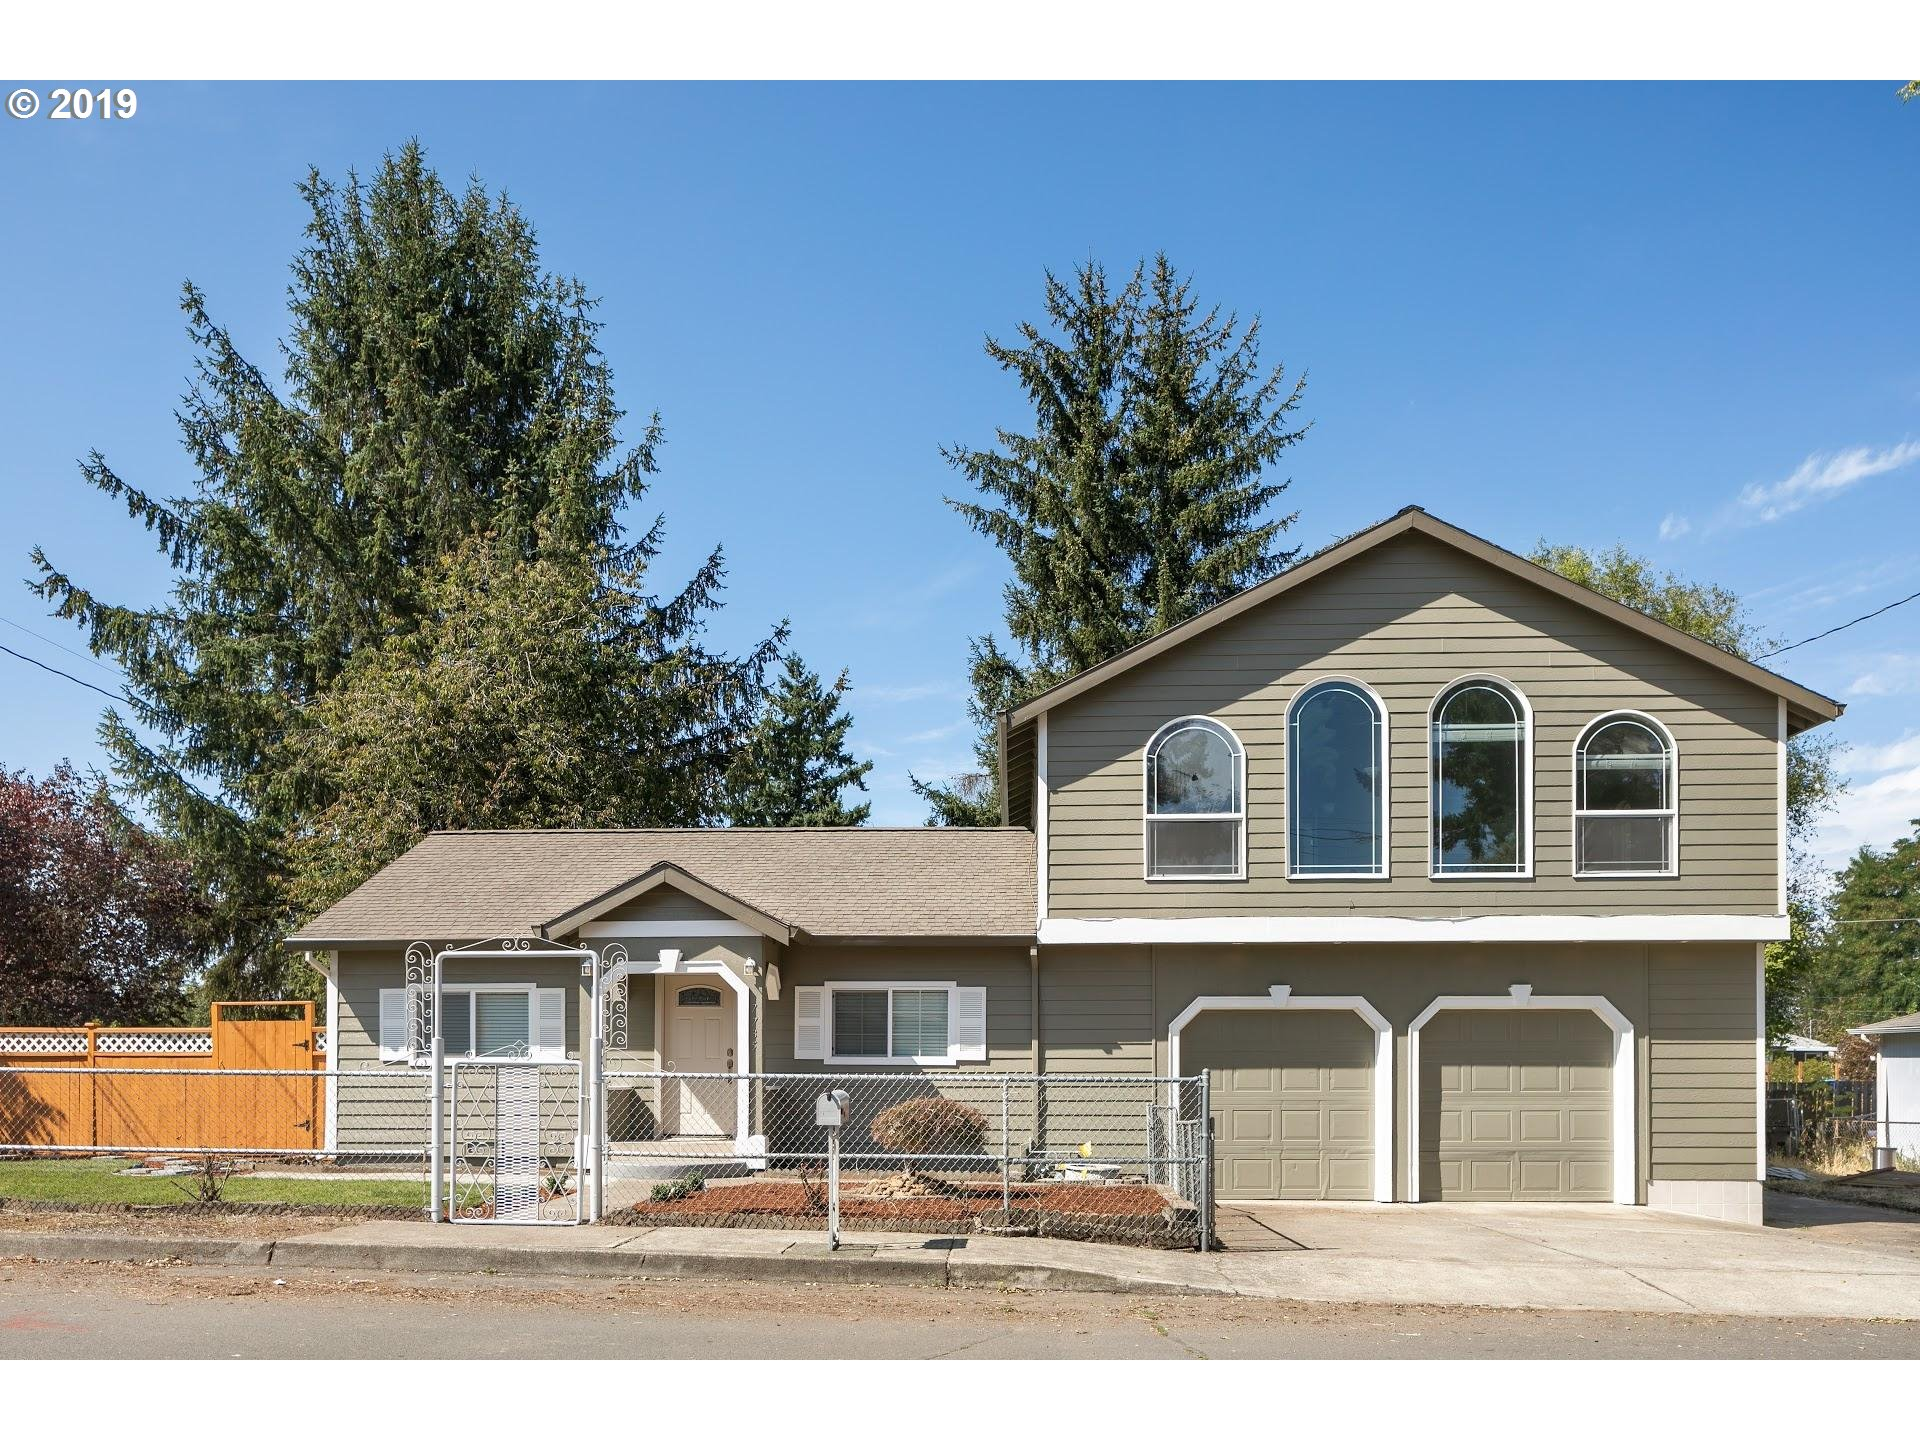 7735 SE 66TH PL, Portland OR 97206